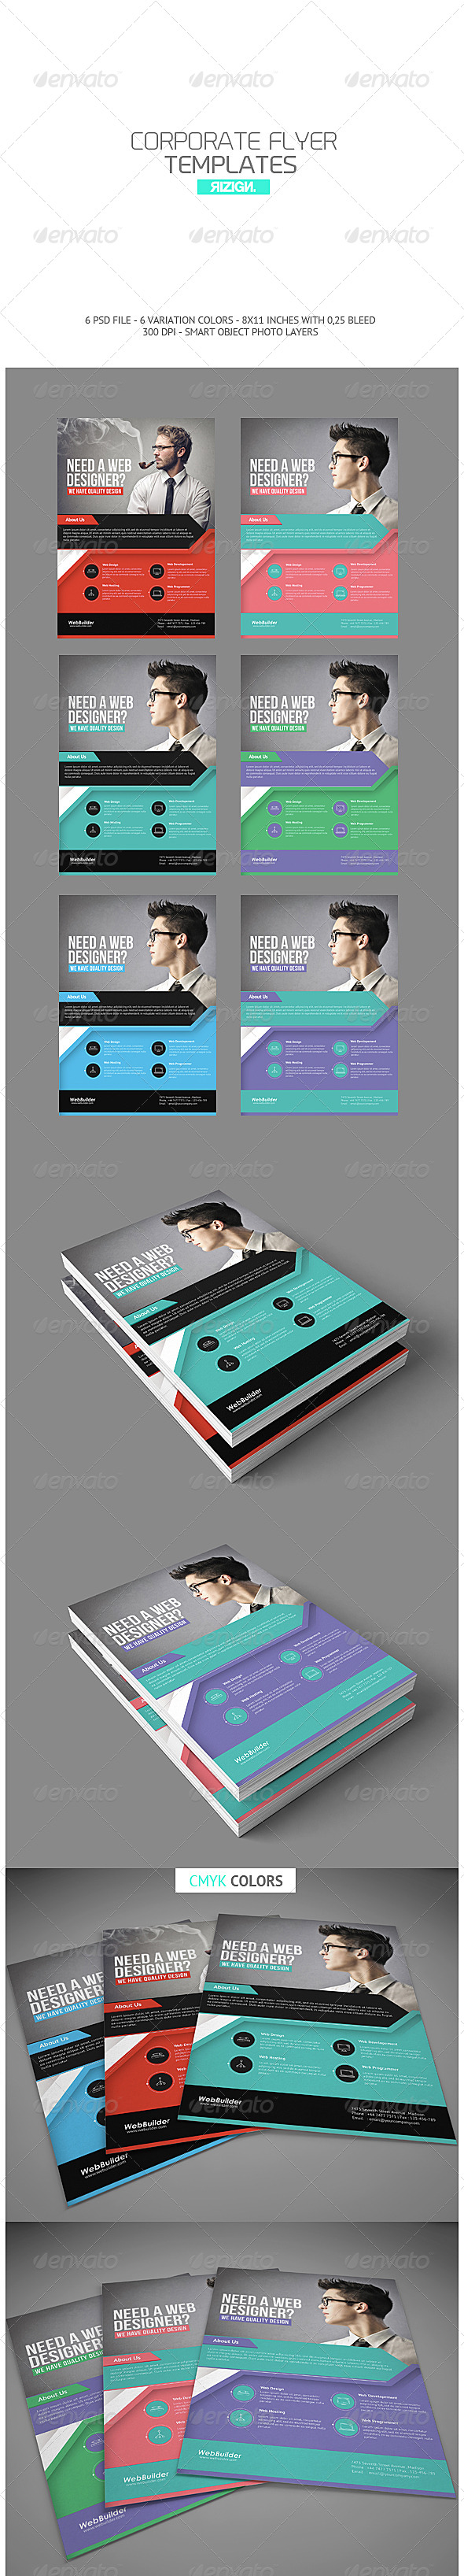 GraphicRiver Corporate Flyer 6733884